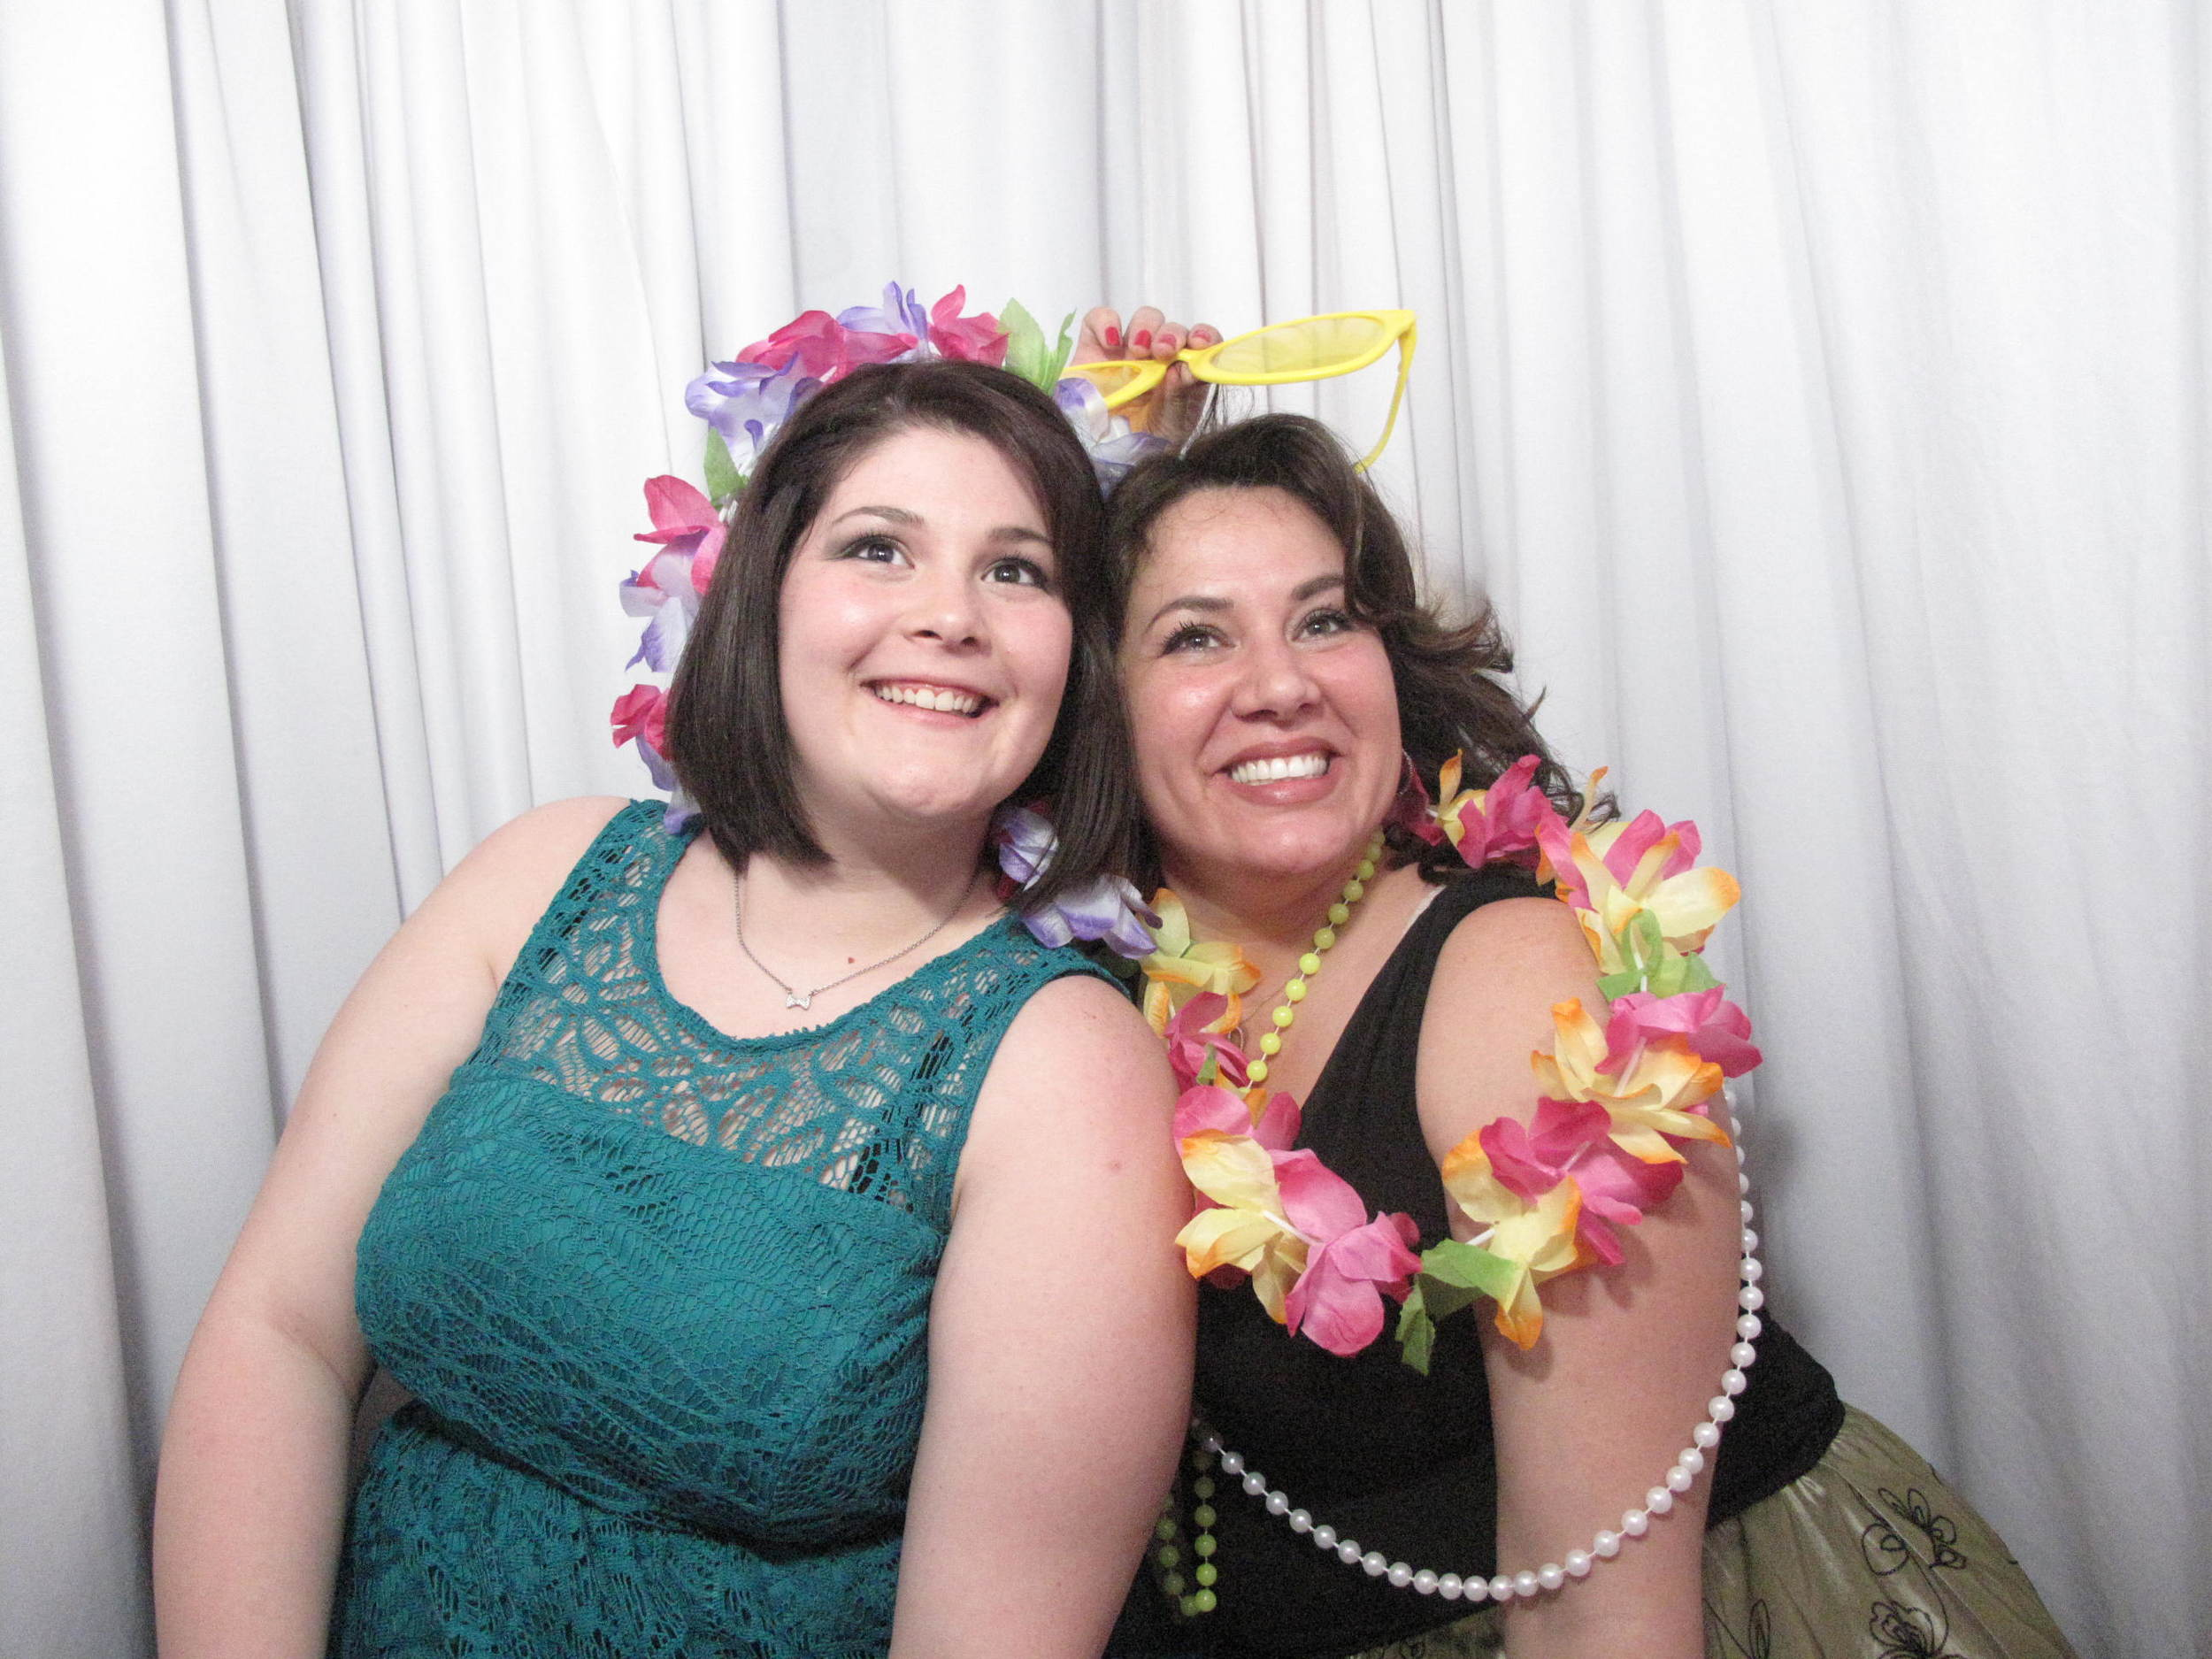 Snapshot Photobooths at the Berkeley in Asbury, New Jersey